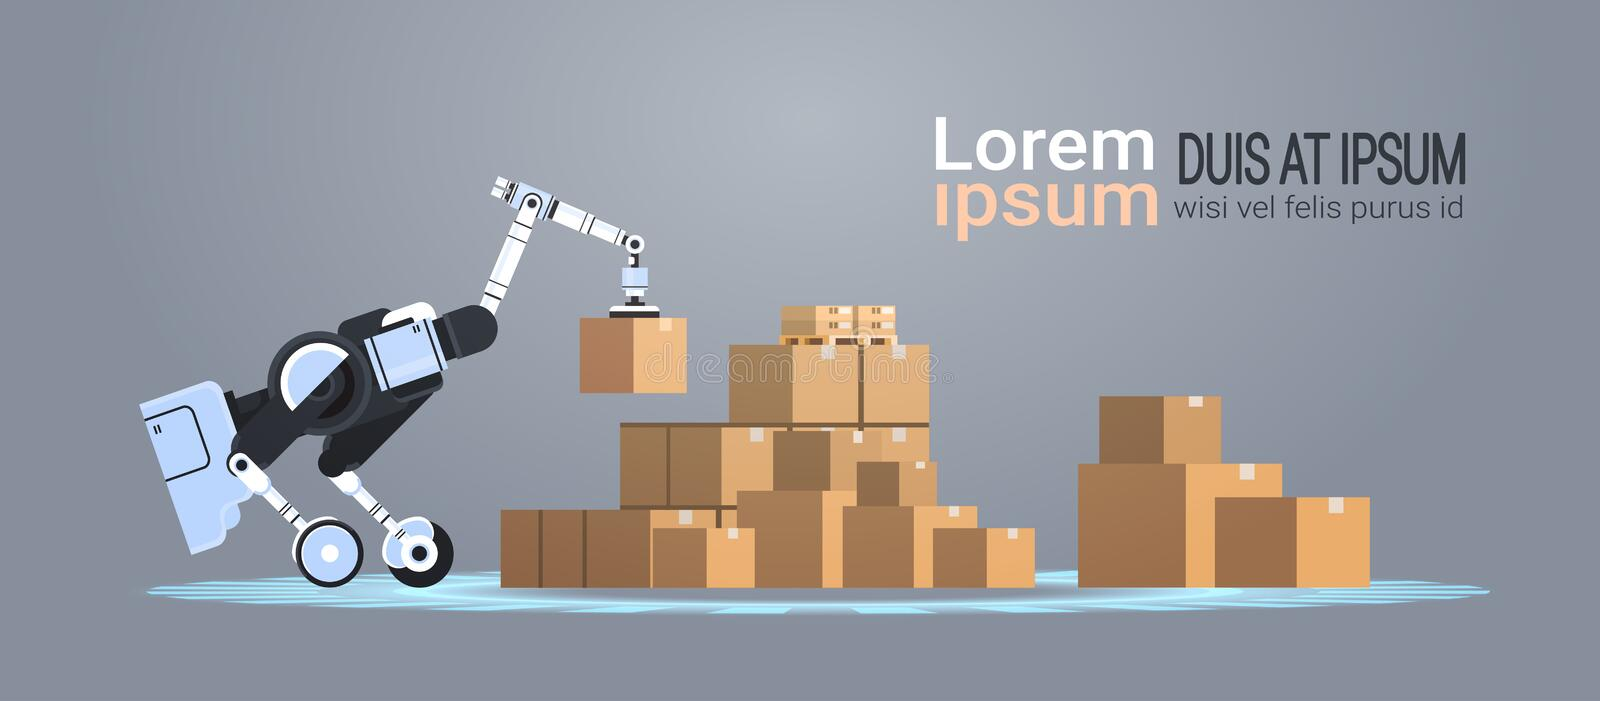 Robotic worker loading cardboard boxes hi-tech smart factory warehouse logistics automation technology concept modern royalty free illustration